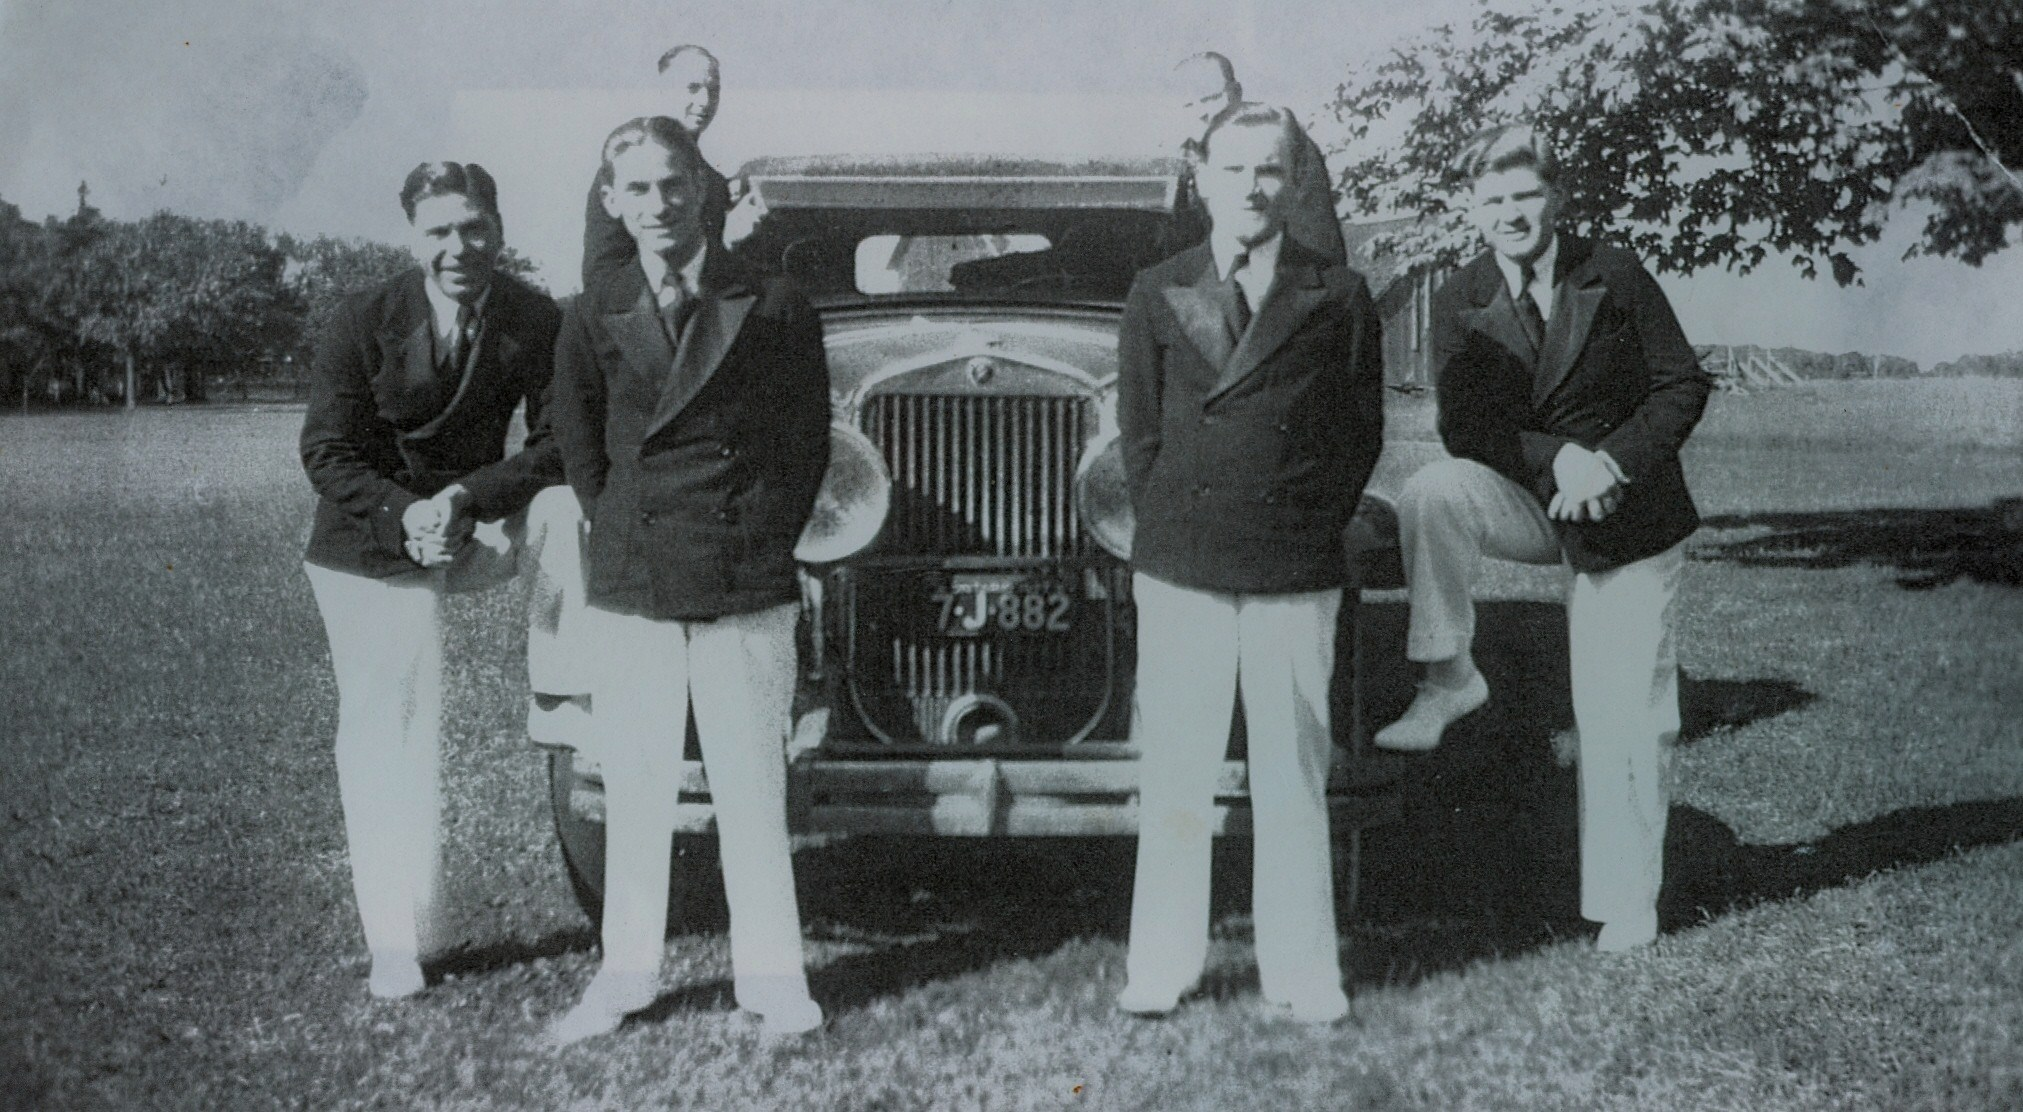 Aces Orchestra1932 in Jack Denmark's 1926 Cadaillac,  at Tipperary Hotel  Fred Doris, Jack Denmark,  back row - Jack Grant, Jack McCaul,  Mike Hayward and Reg Spalding